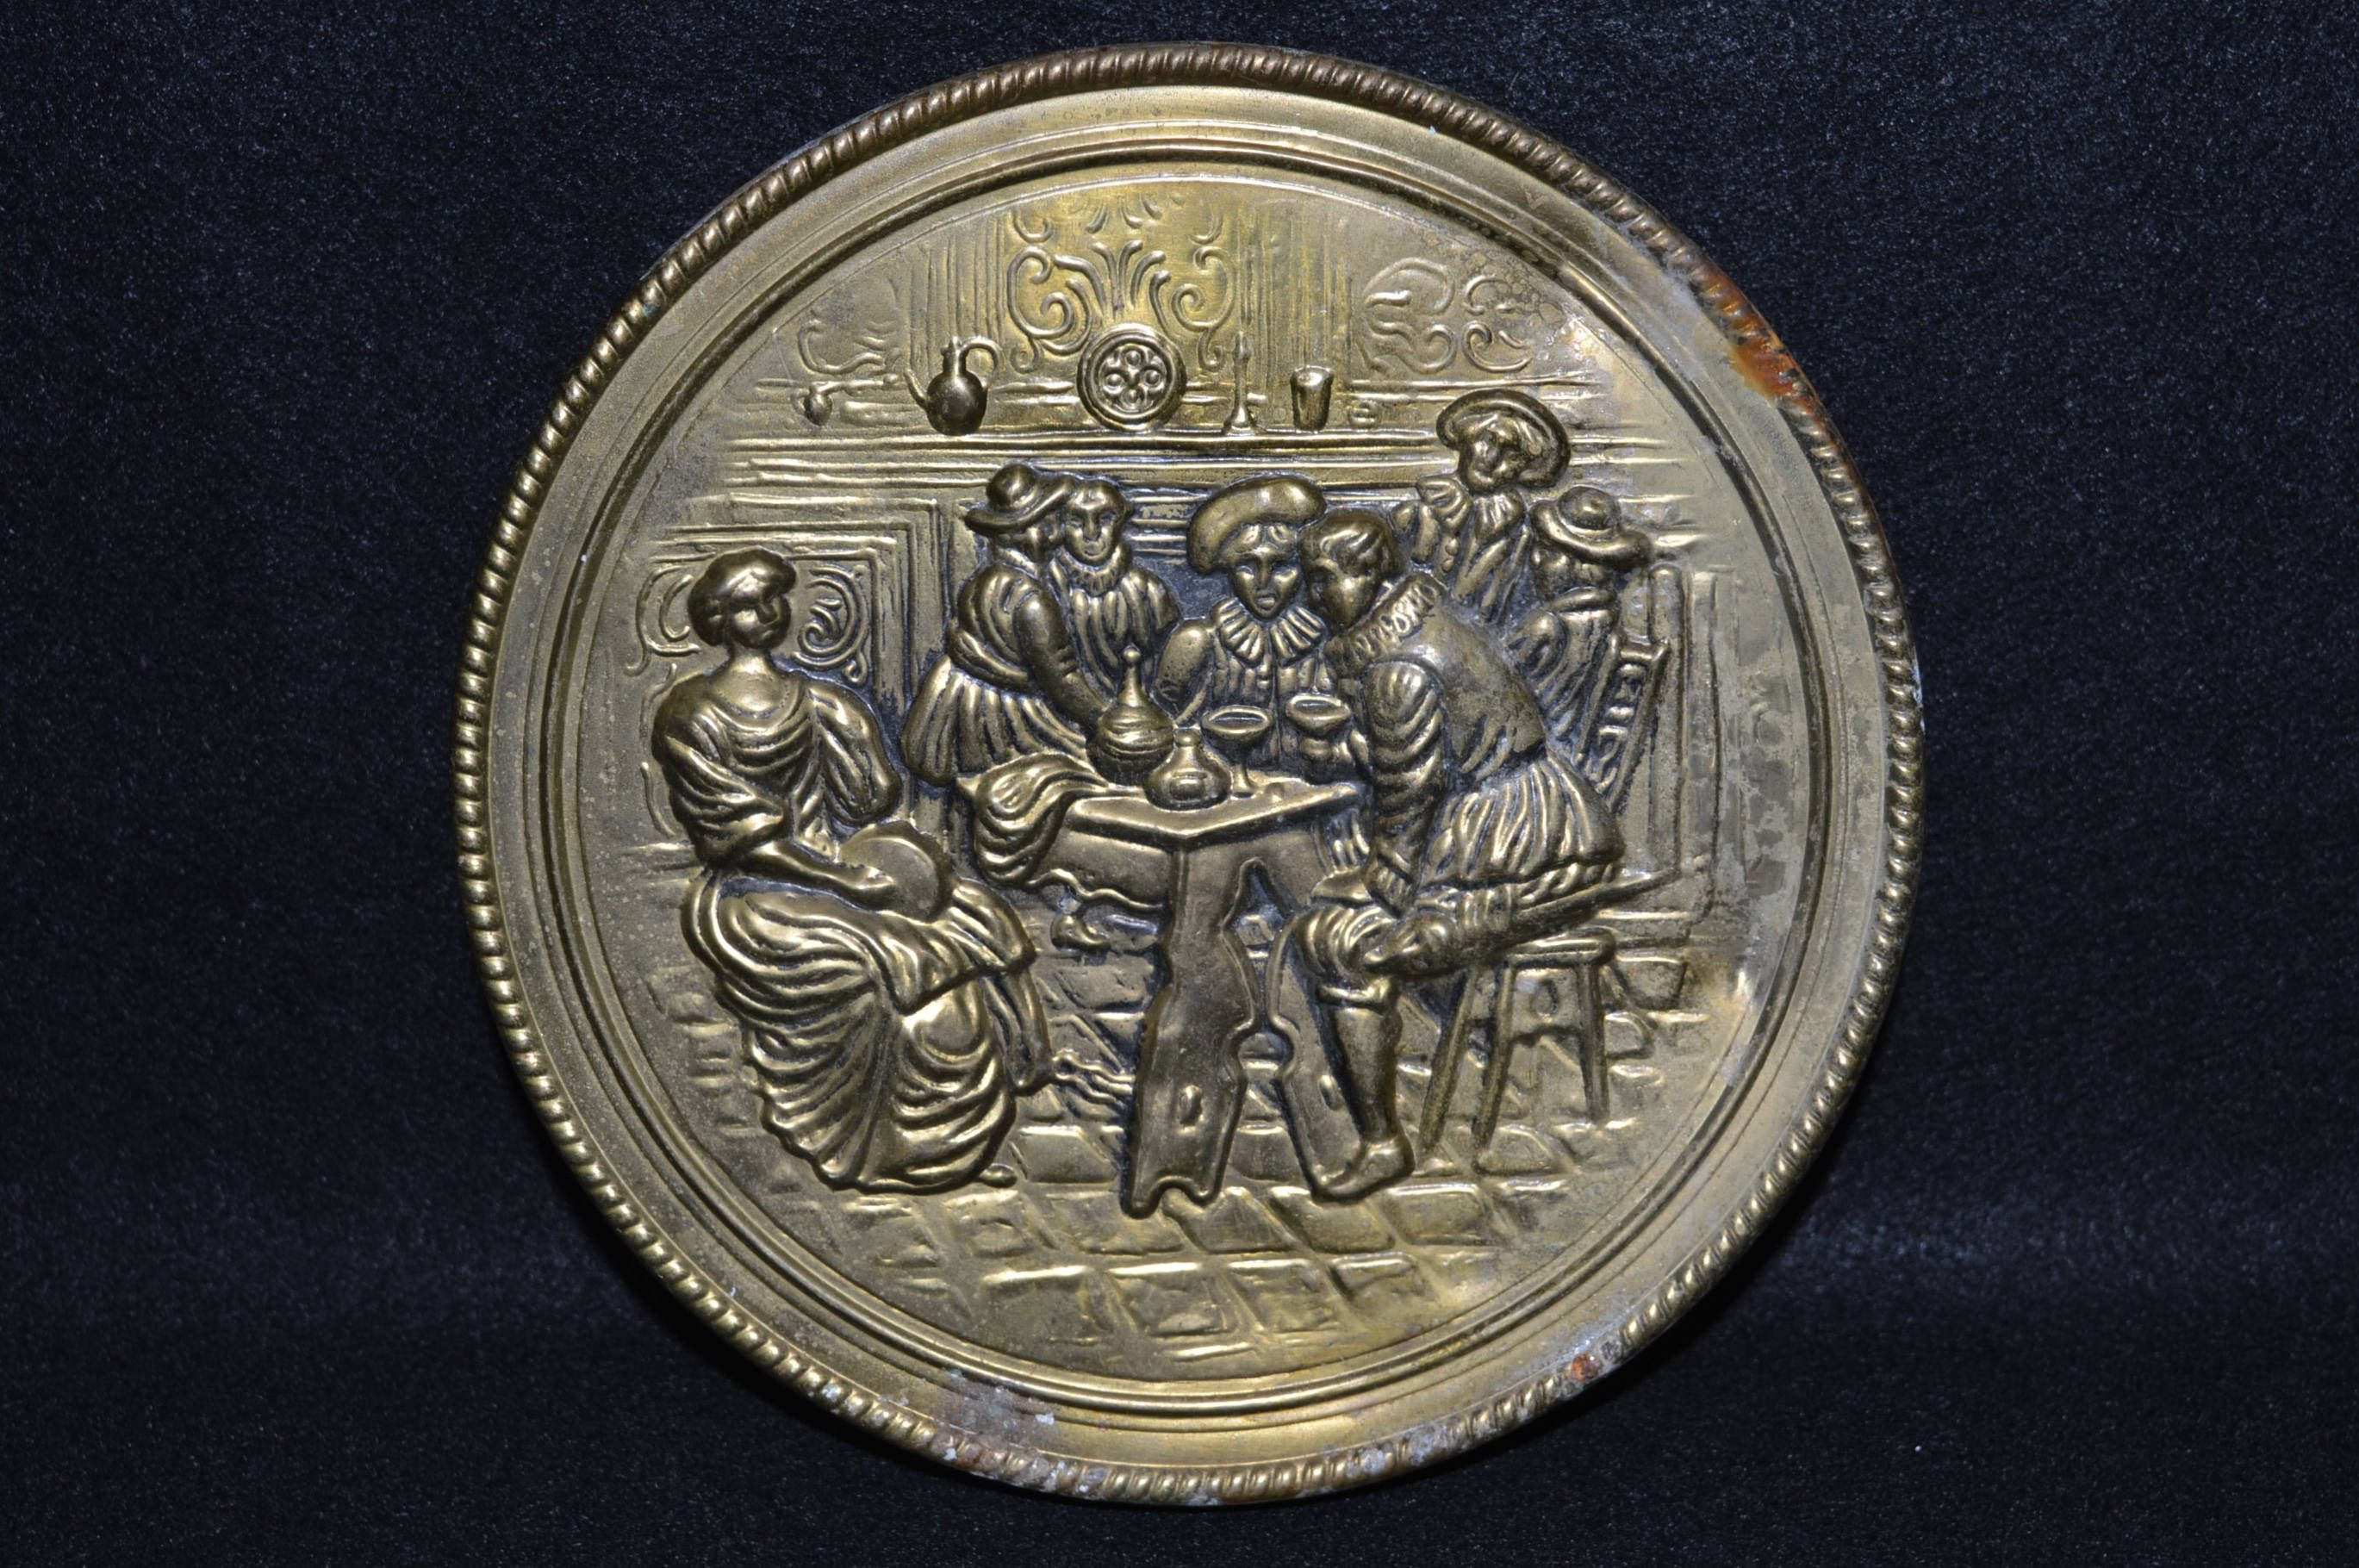 Vintage Brass Wall Pocket Round Wall Pocket Tavern Scene Made In England Embossed Brass Wall Plate Nice Engli Tavern Decor Vintage Brass Brass Wall Hanging